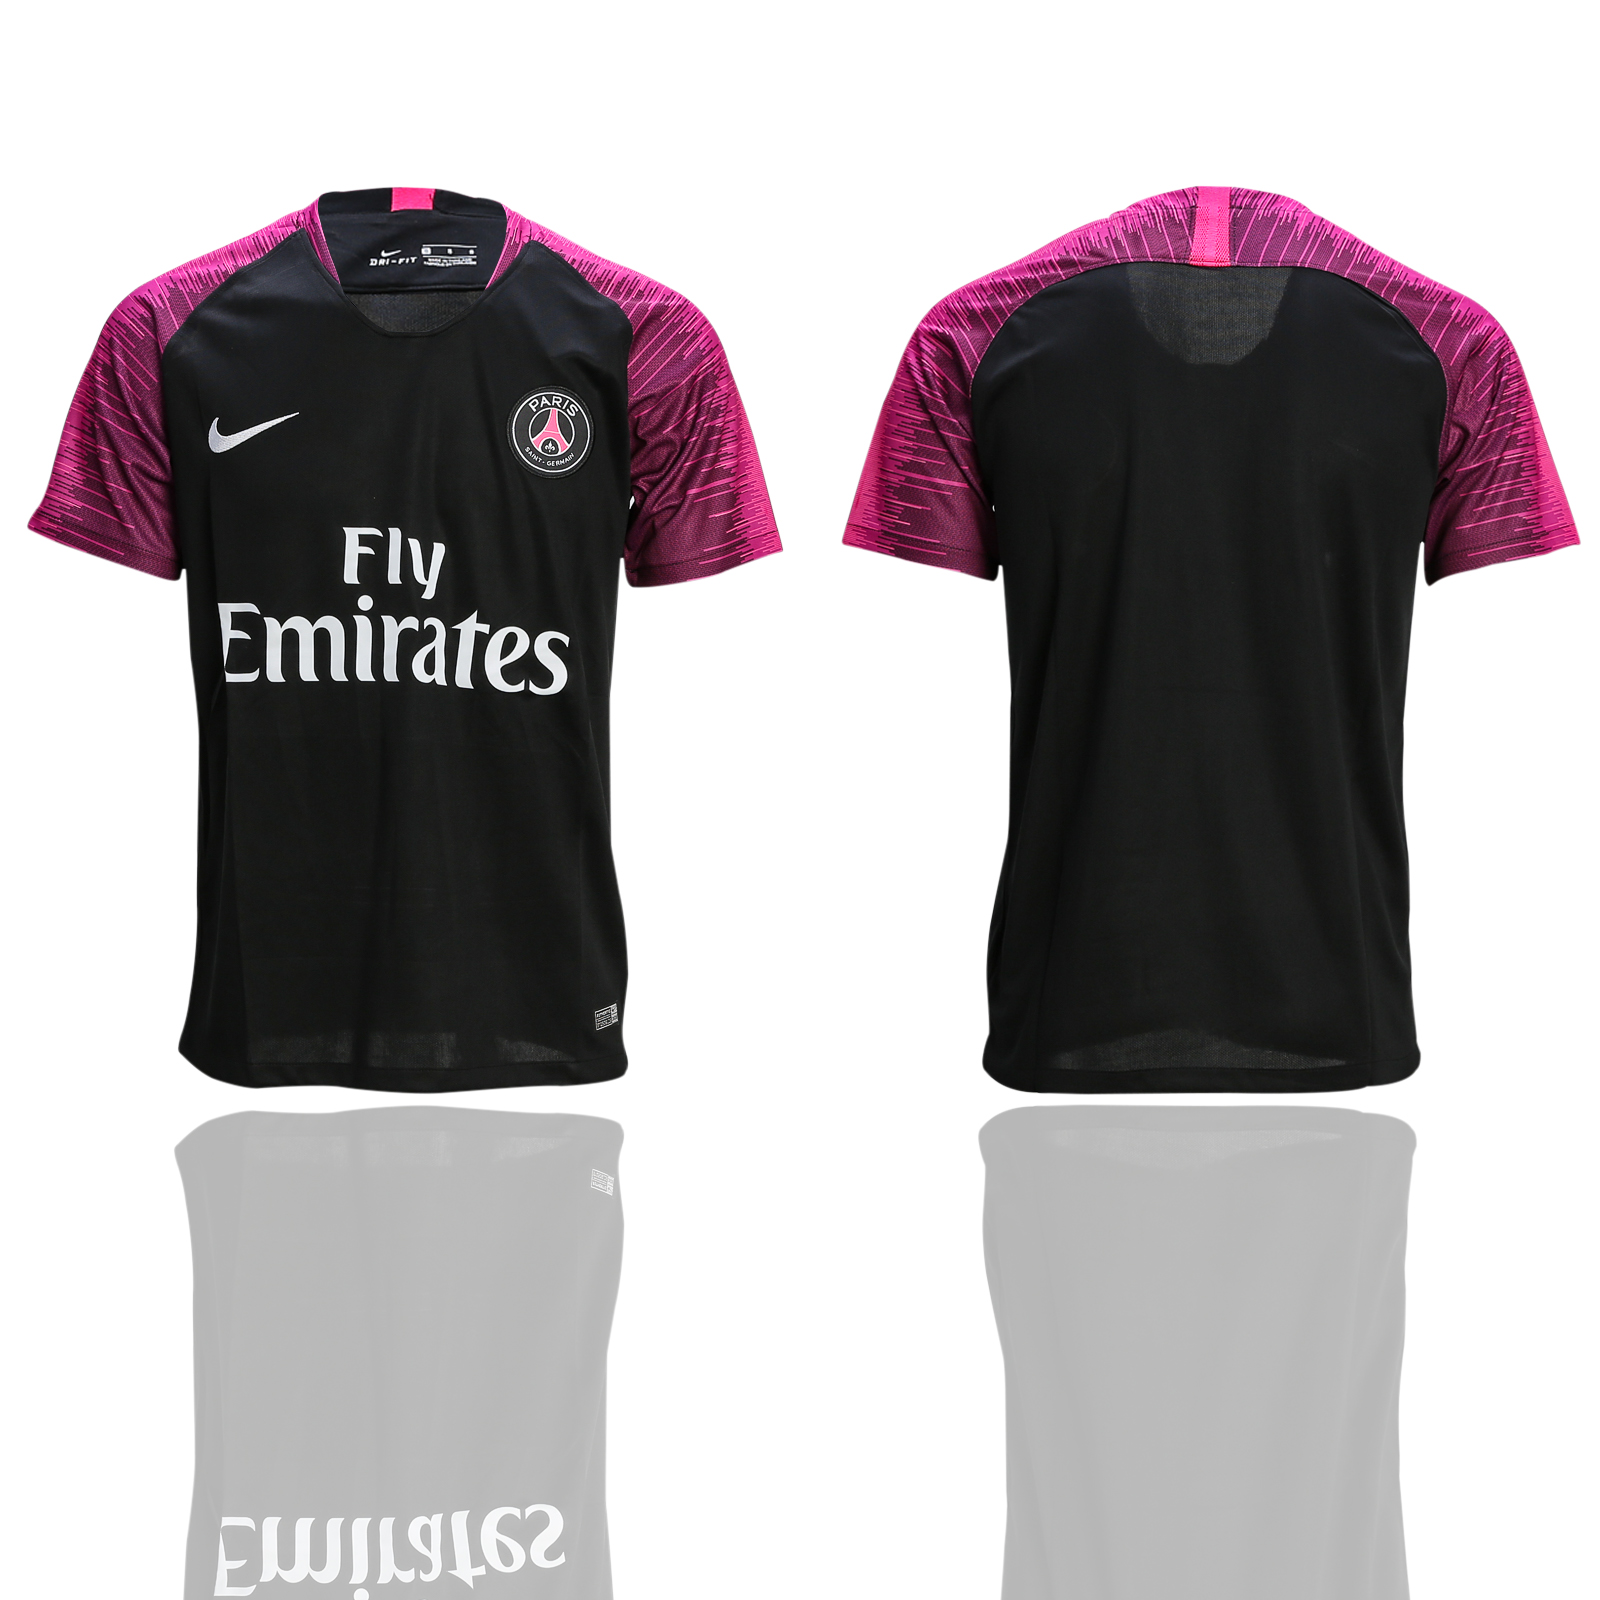 2018-19 Paris Saint-Germain Black Training Thailand Soccer Jersey